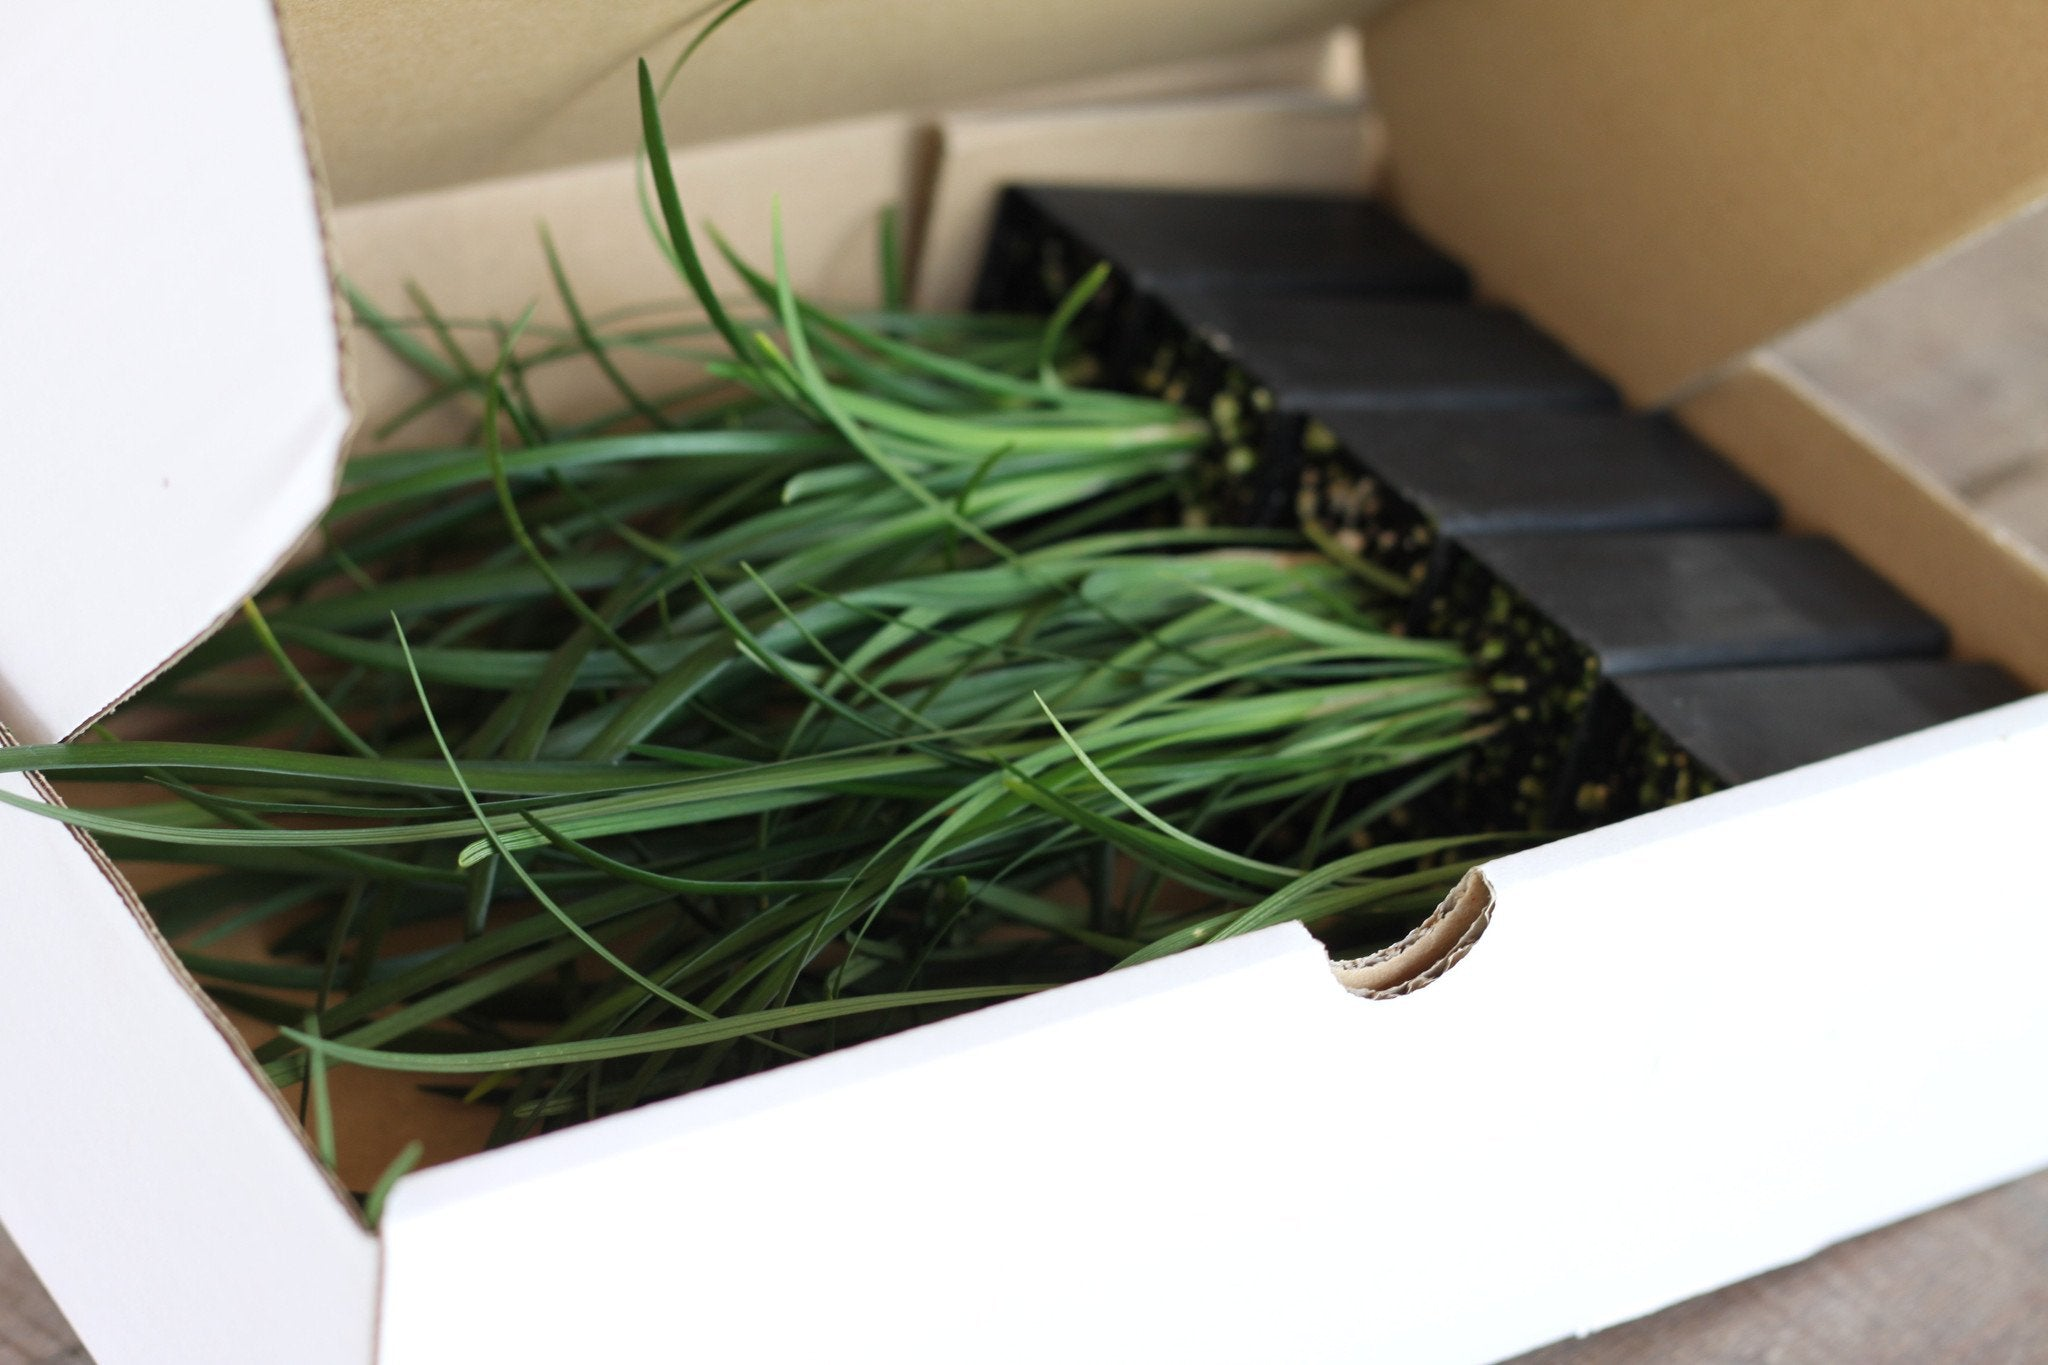 Liriope Evergreen Giant | Plants in a Box | Buy Plants Online | Free Shipping Australia